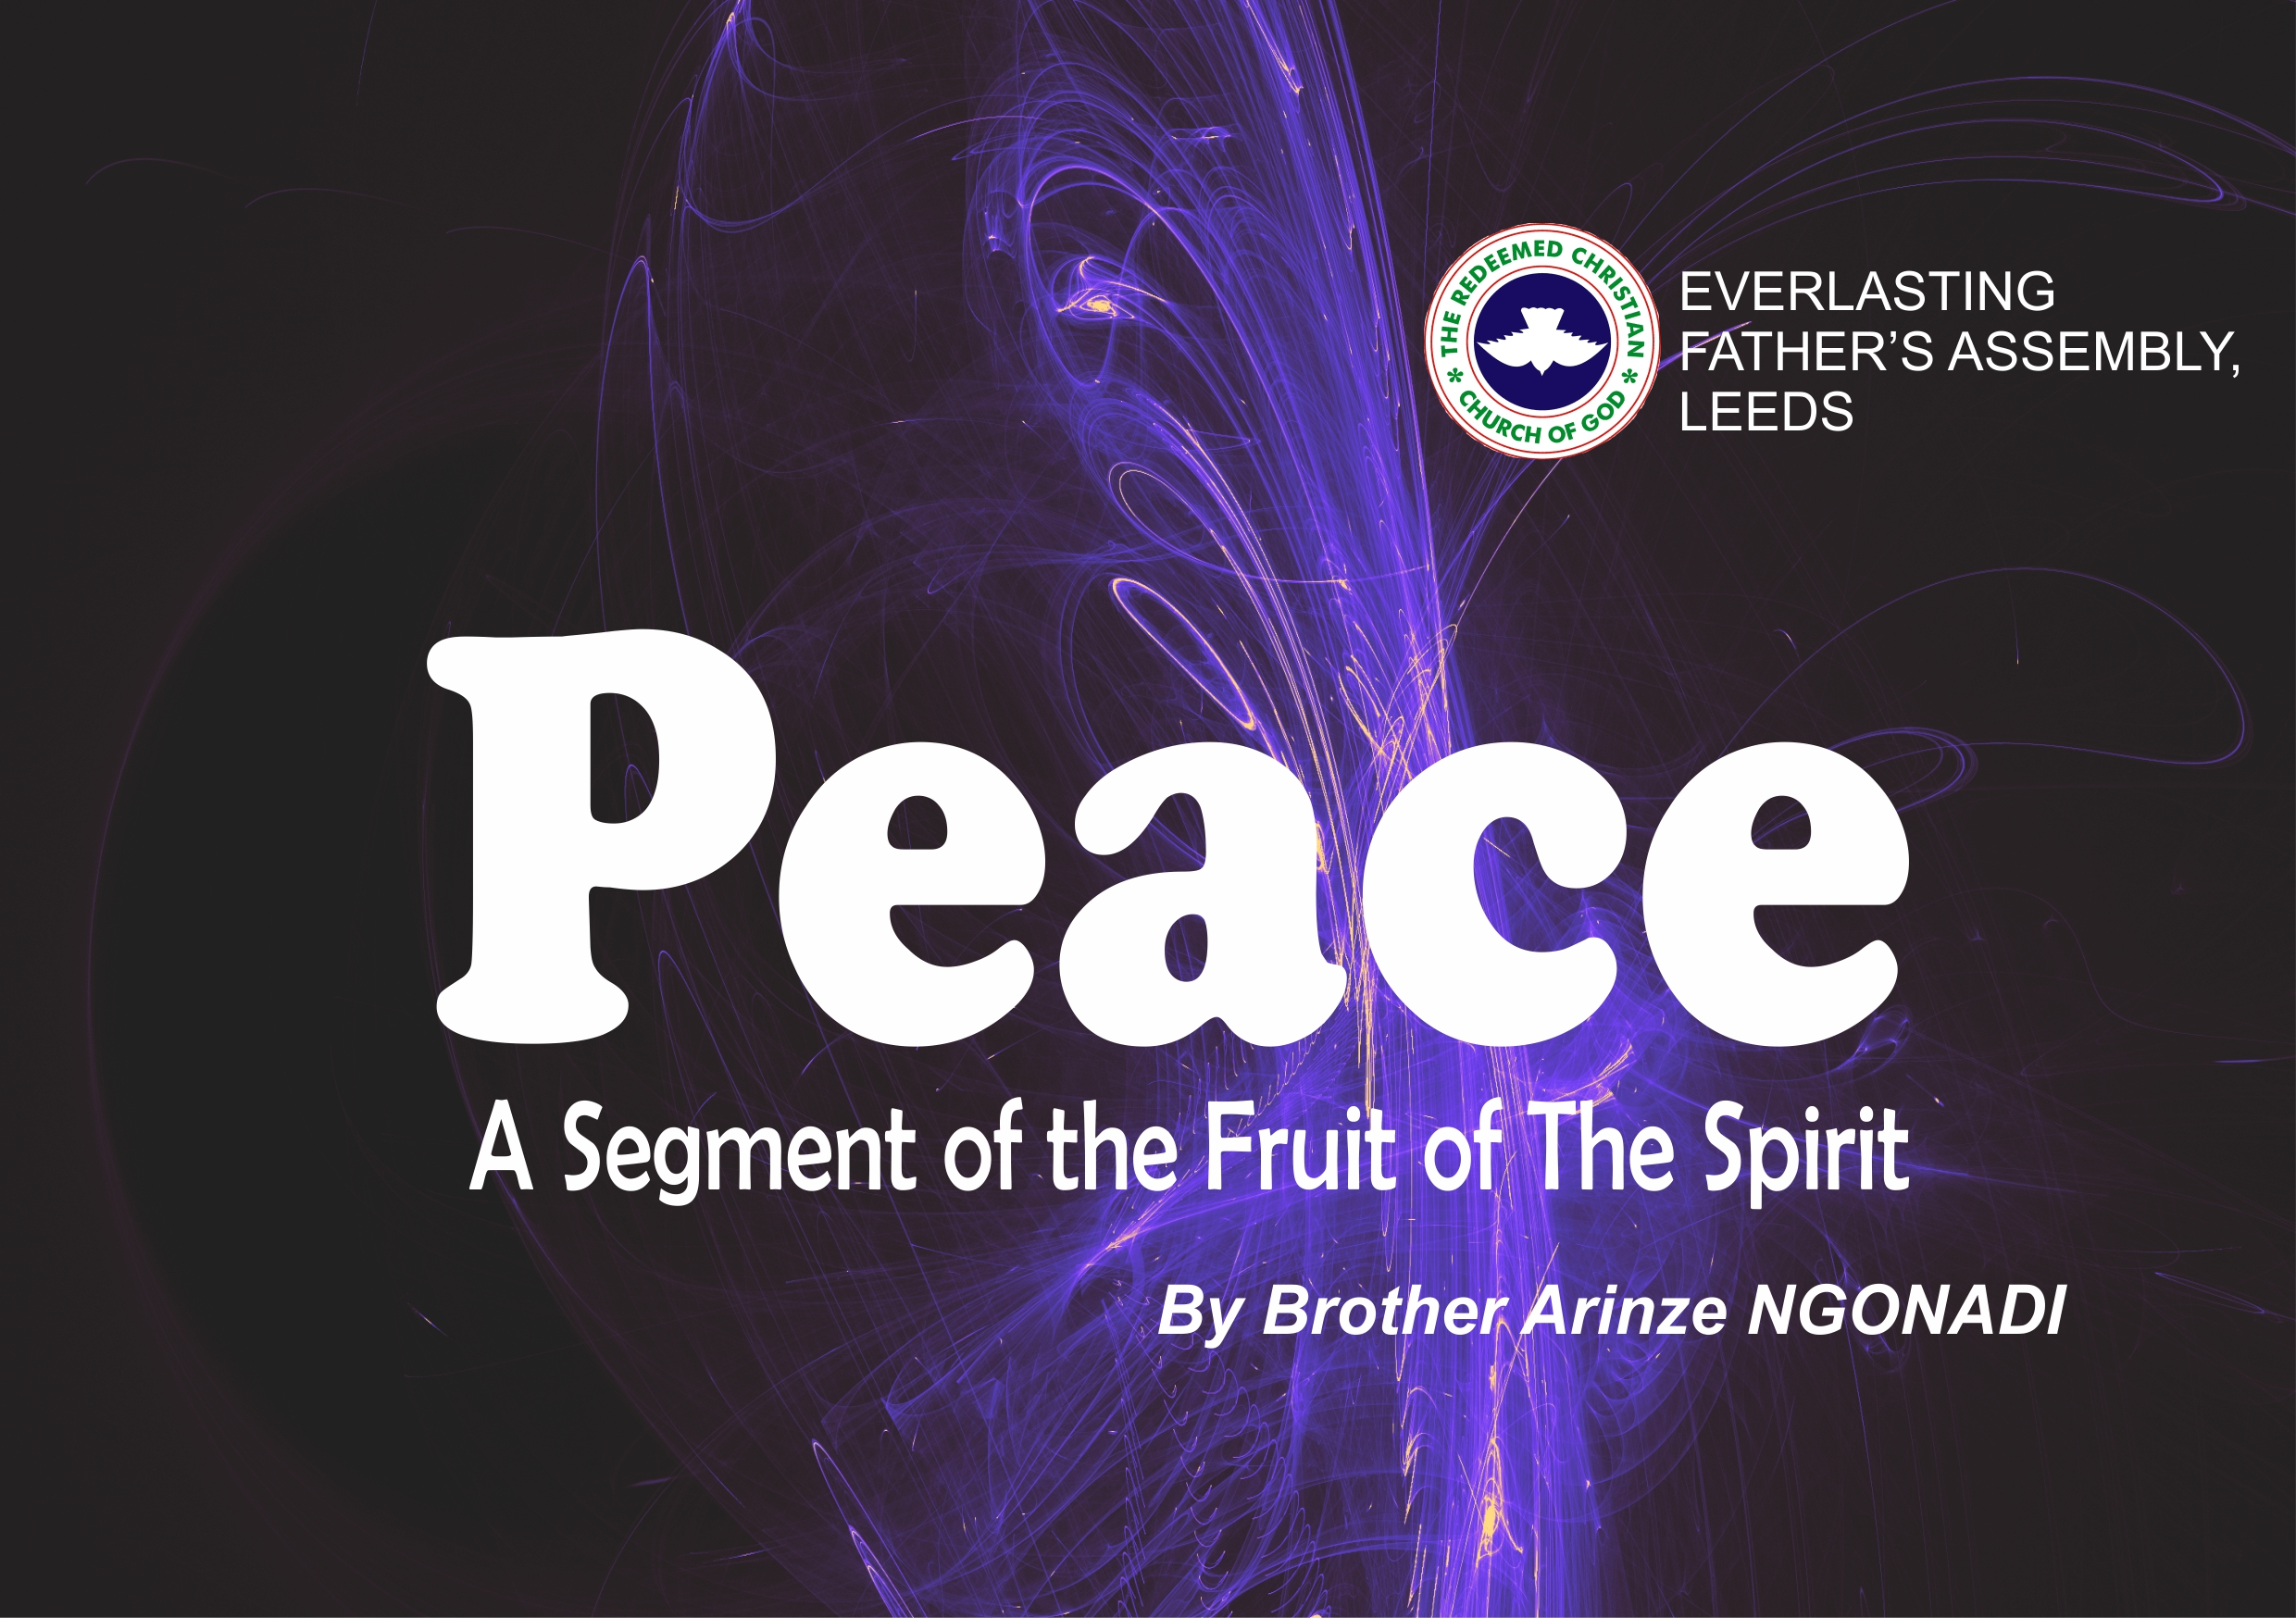 Peace – A Segment of the Fruit of The Spirit, by Brother Arinze Ngonadi